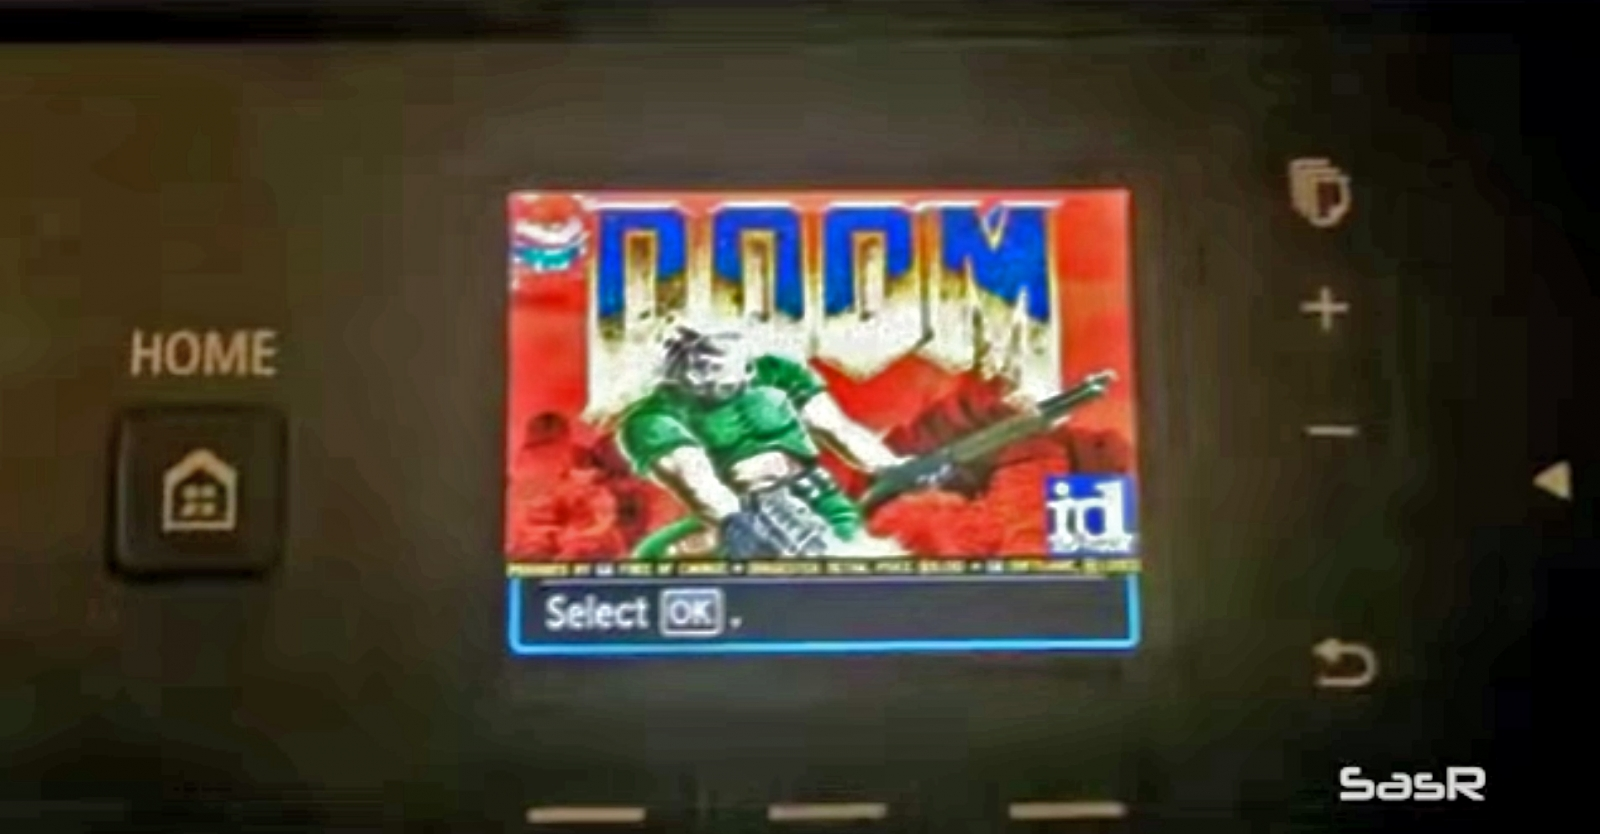 This is Doom, running on a Canon Pixma Printer's LCD screen - a security firm has detected a flaw that lets wireless printers be hacked